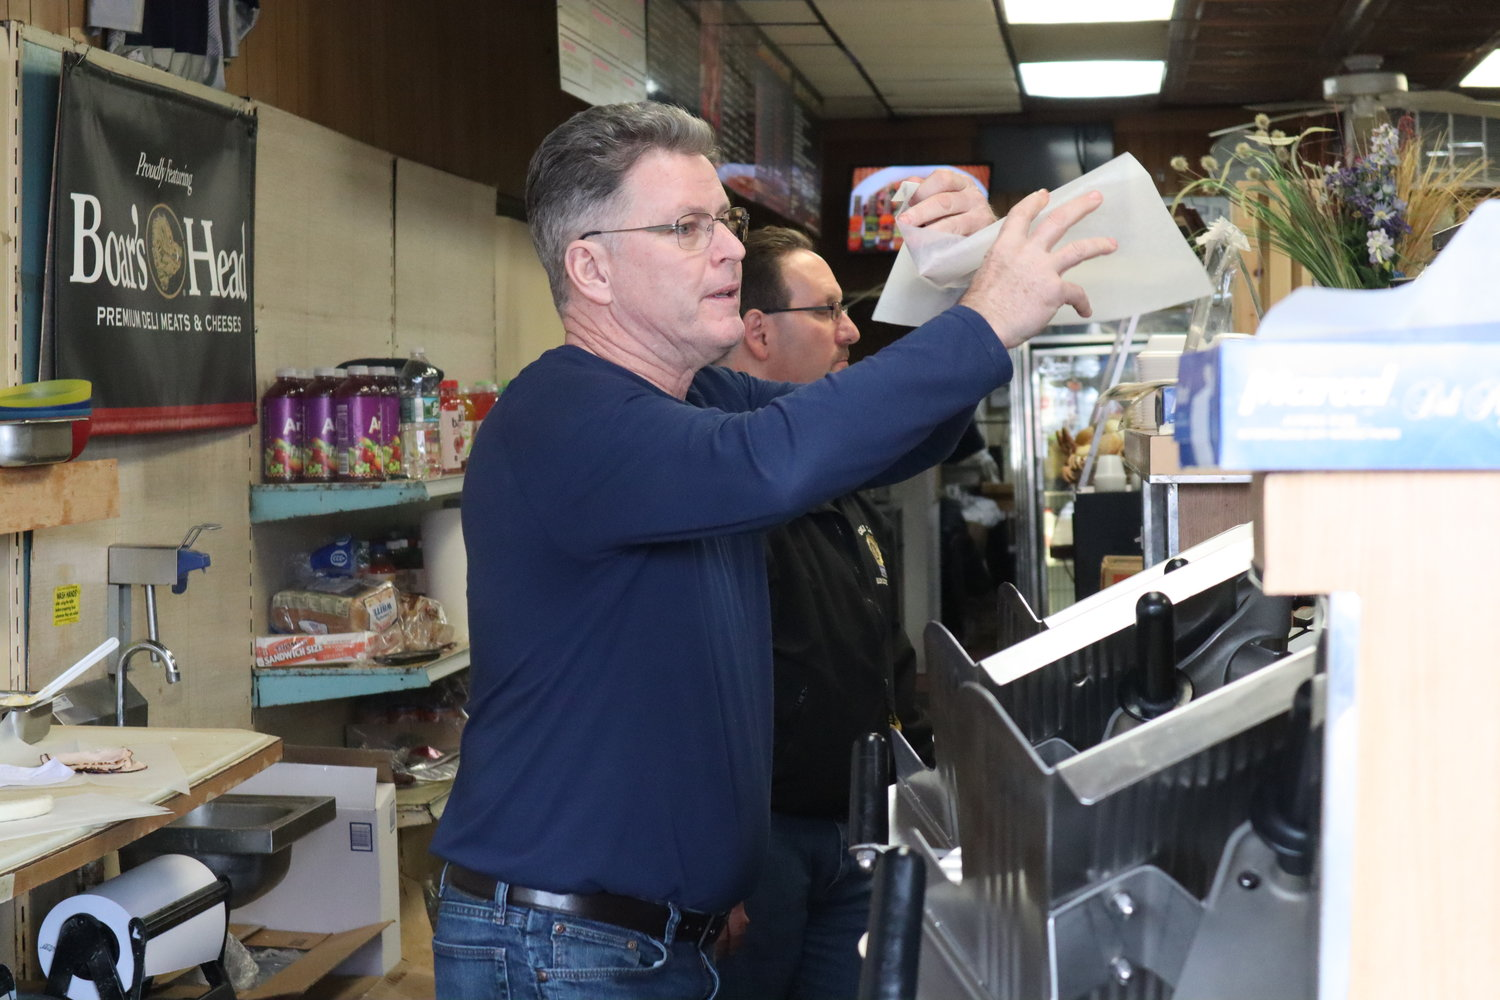 Gerry Parker, another friend of the deli's staff, helped with operations during its final day in business. He also started an online fundraiser to help the owners deal with back tax payments and renovations, but it was too late to save the business from eviction.